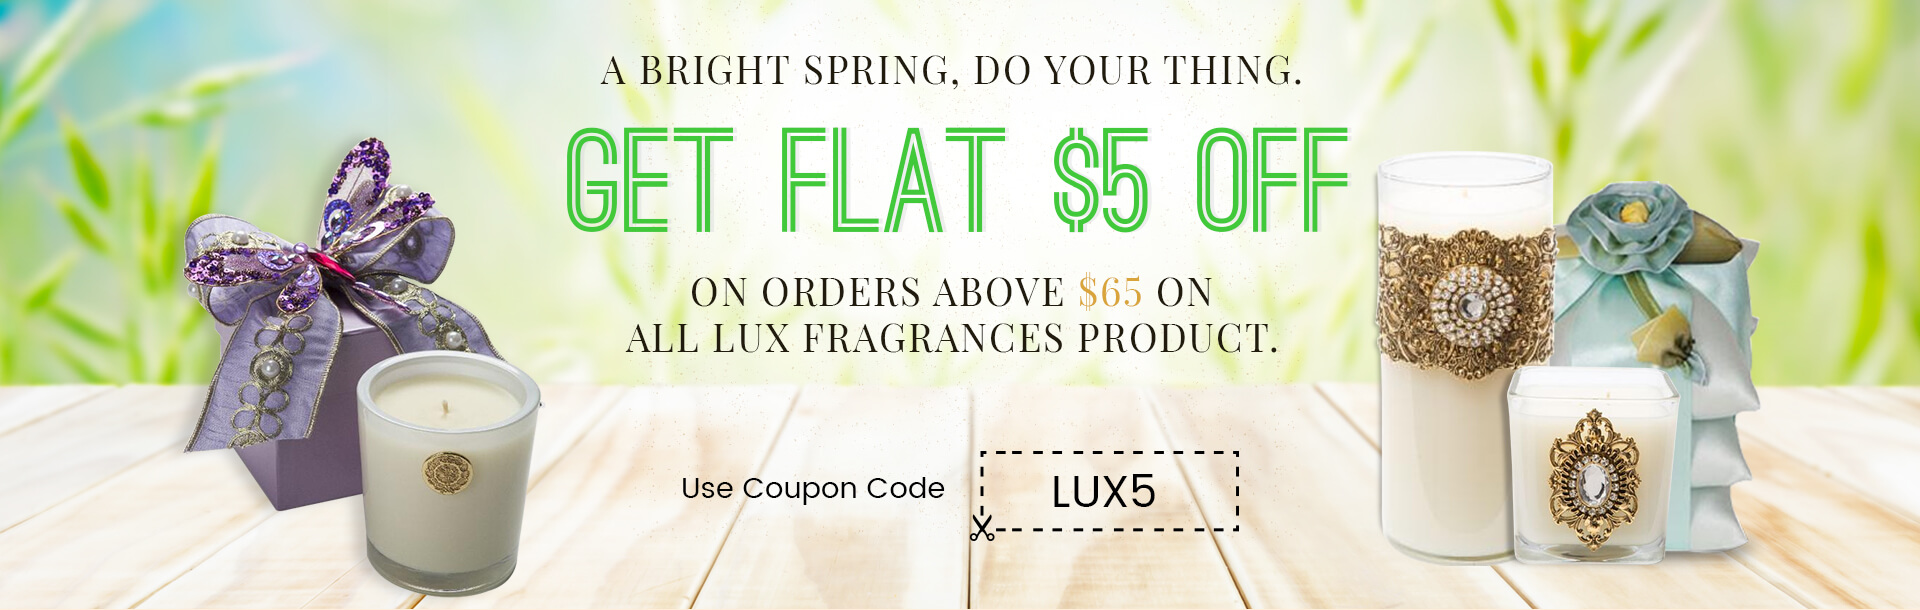 Flat $5 Off using LUX5 Coupon Code